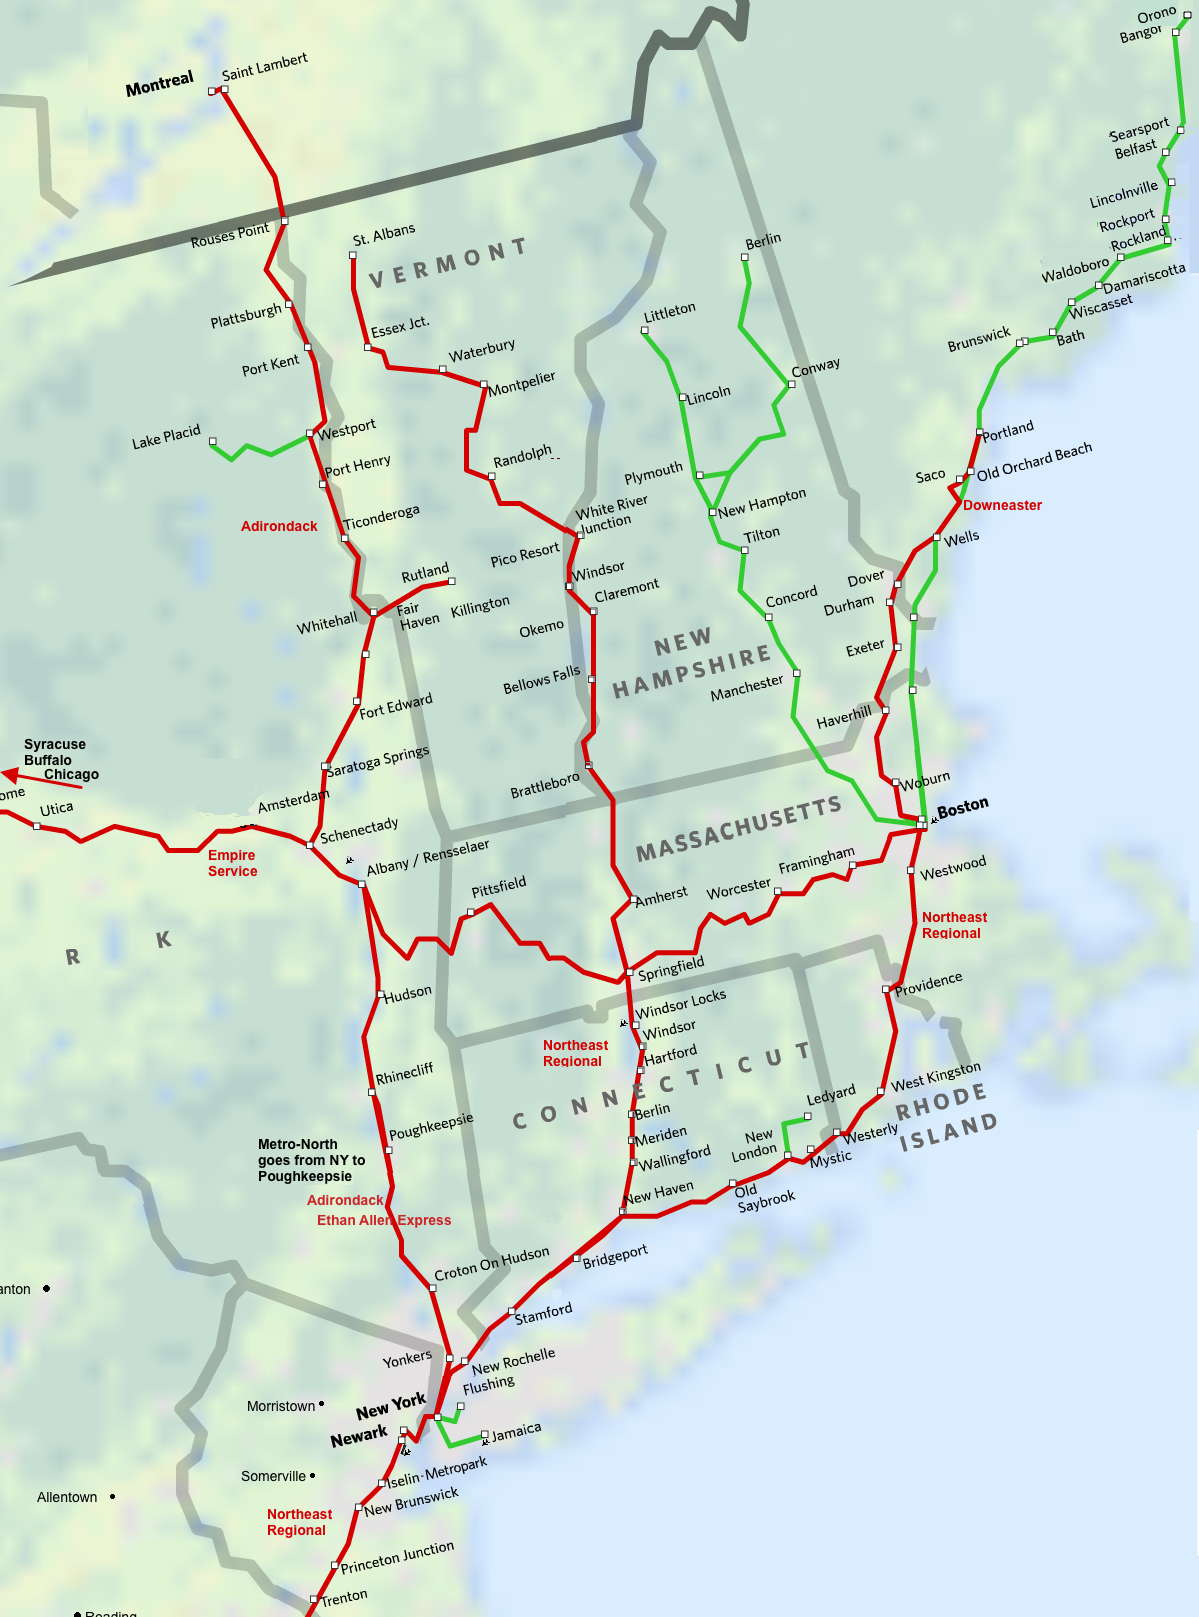 North East New England Amtrak Route Map Super Easy Way To Get To - Map of eastern maine